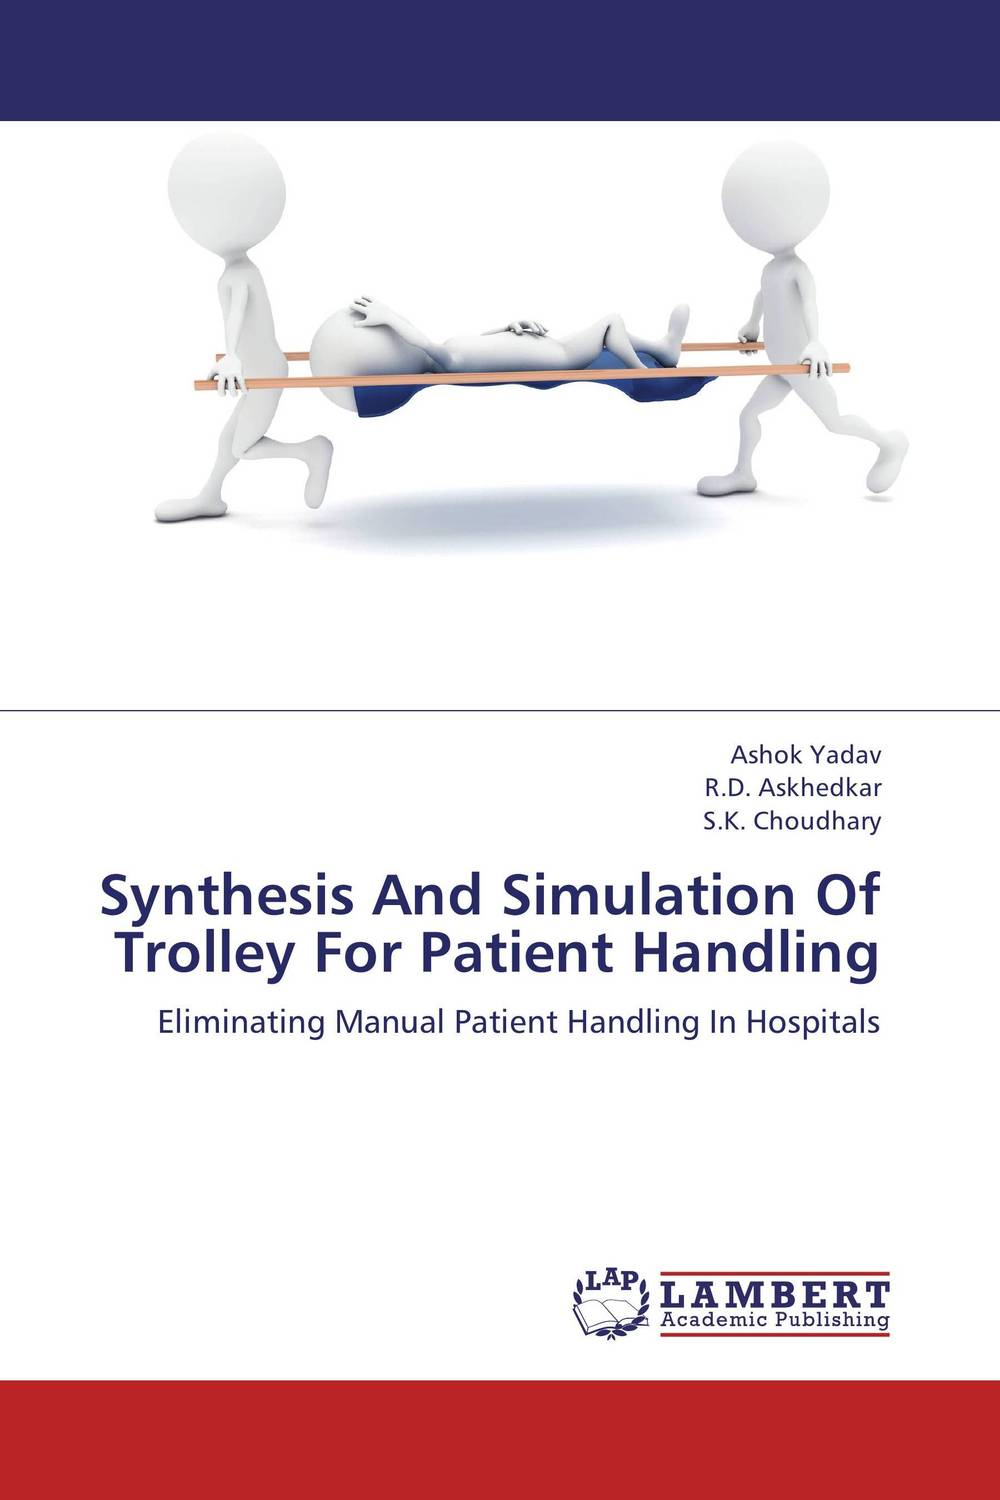 Synthesis And Simulation Of Trolley For Patient Handling ashok yadav r d askhedkar and s k choudhary synthesis and simulation of trolley for patient handling